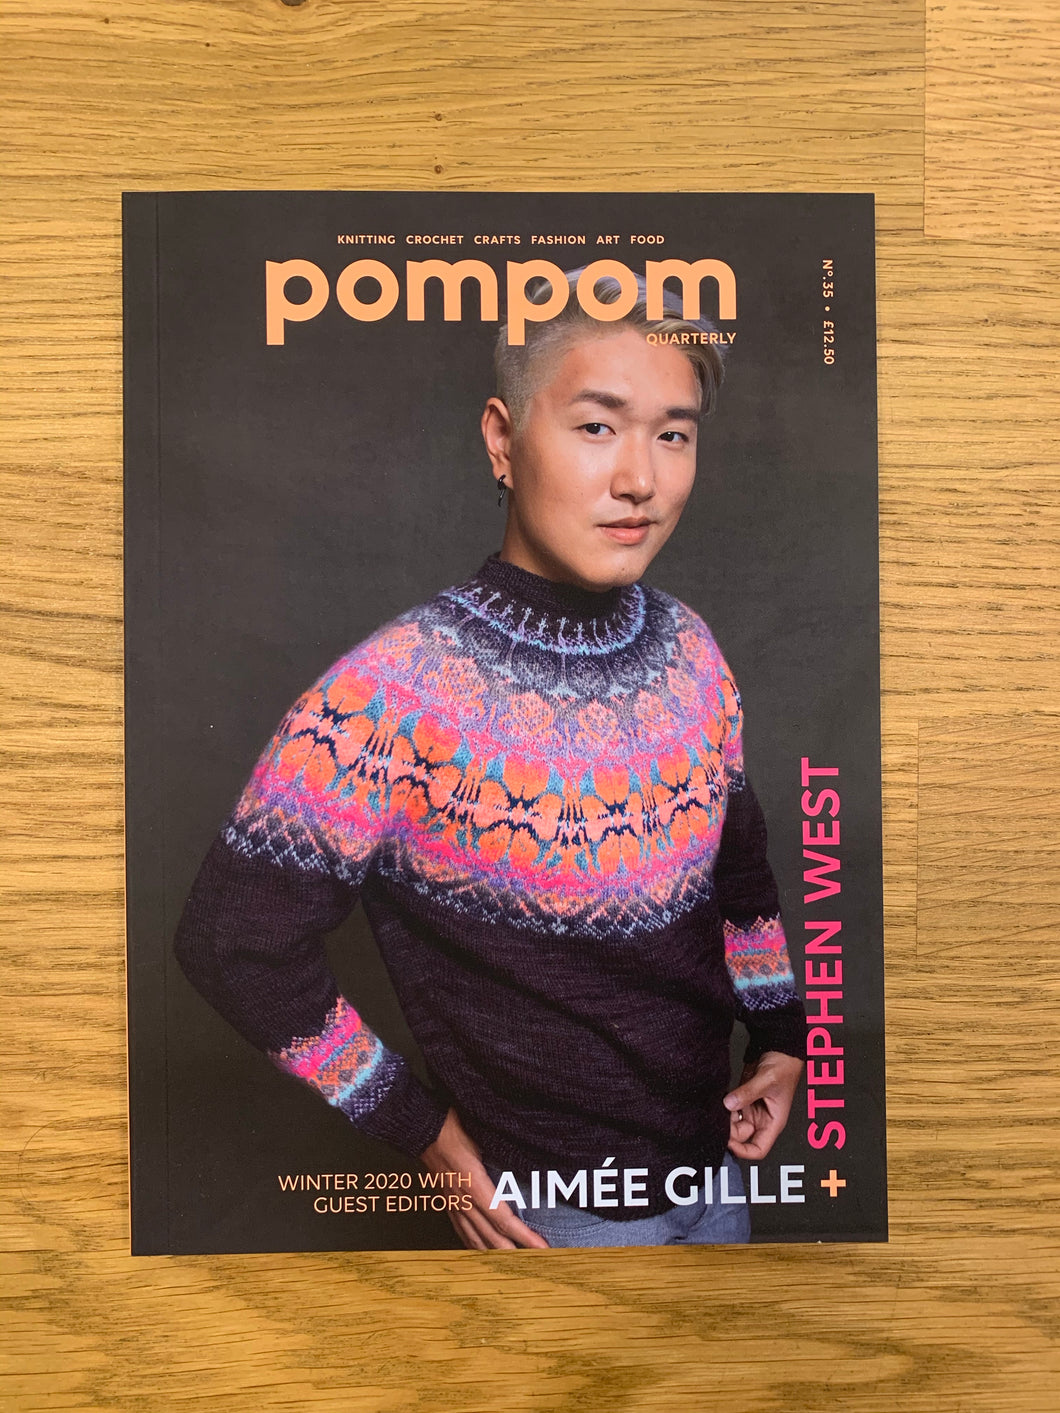 pompom Quarterly - Winter 2020